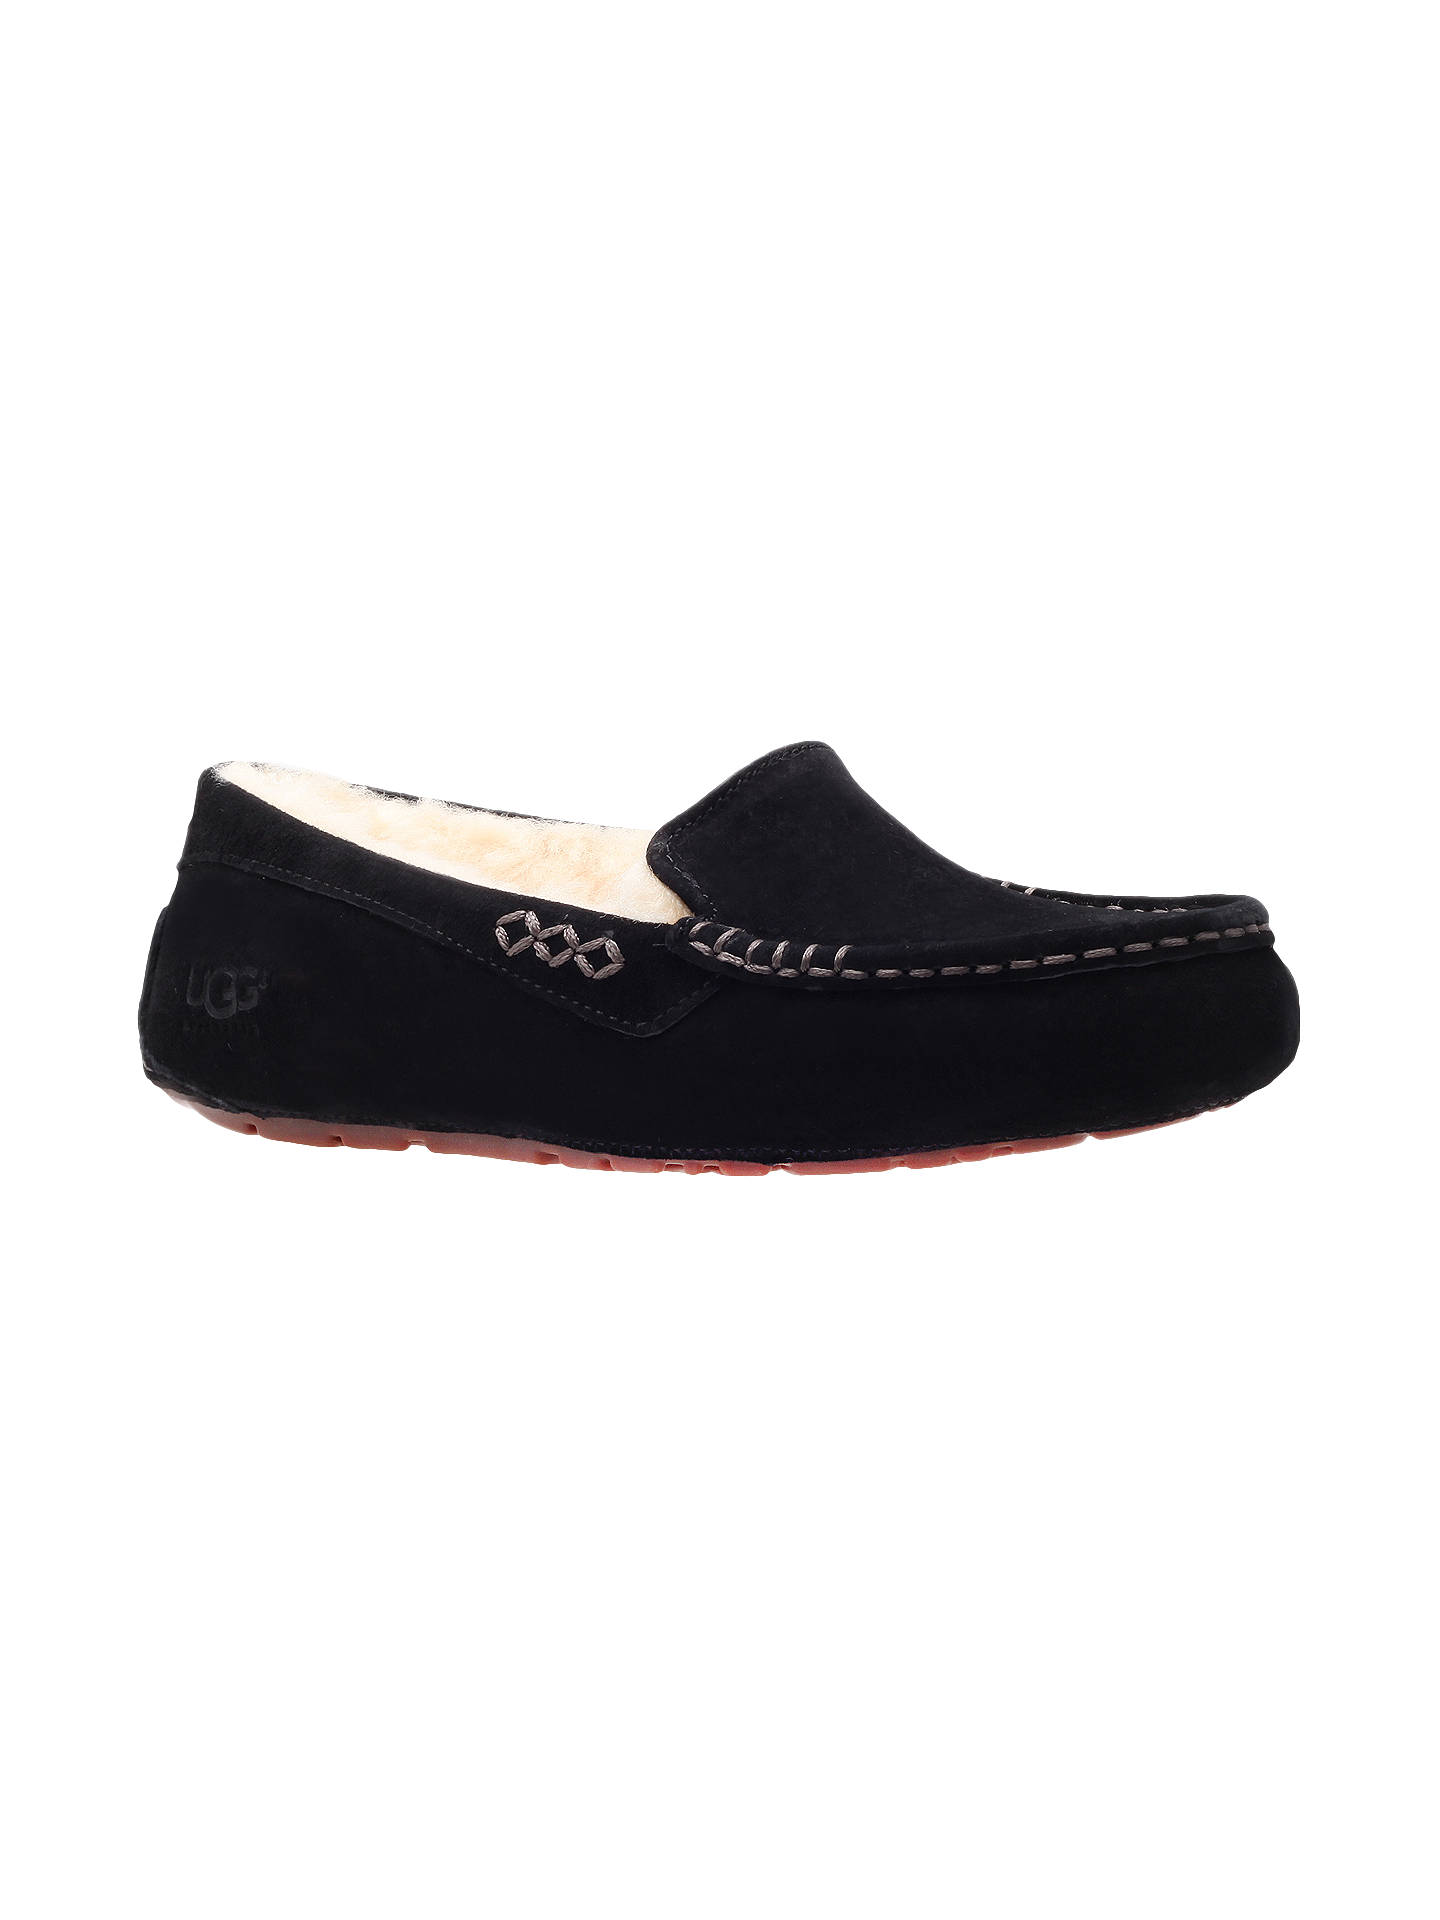 51c3439058d UGG Ansley Moccasin Sheepskin Slippers, Black at John Lewis & Partners